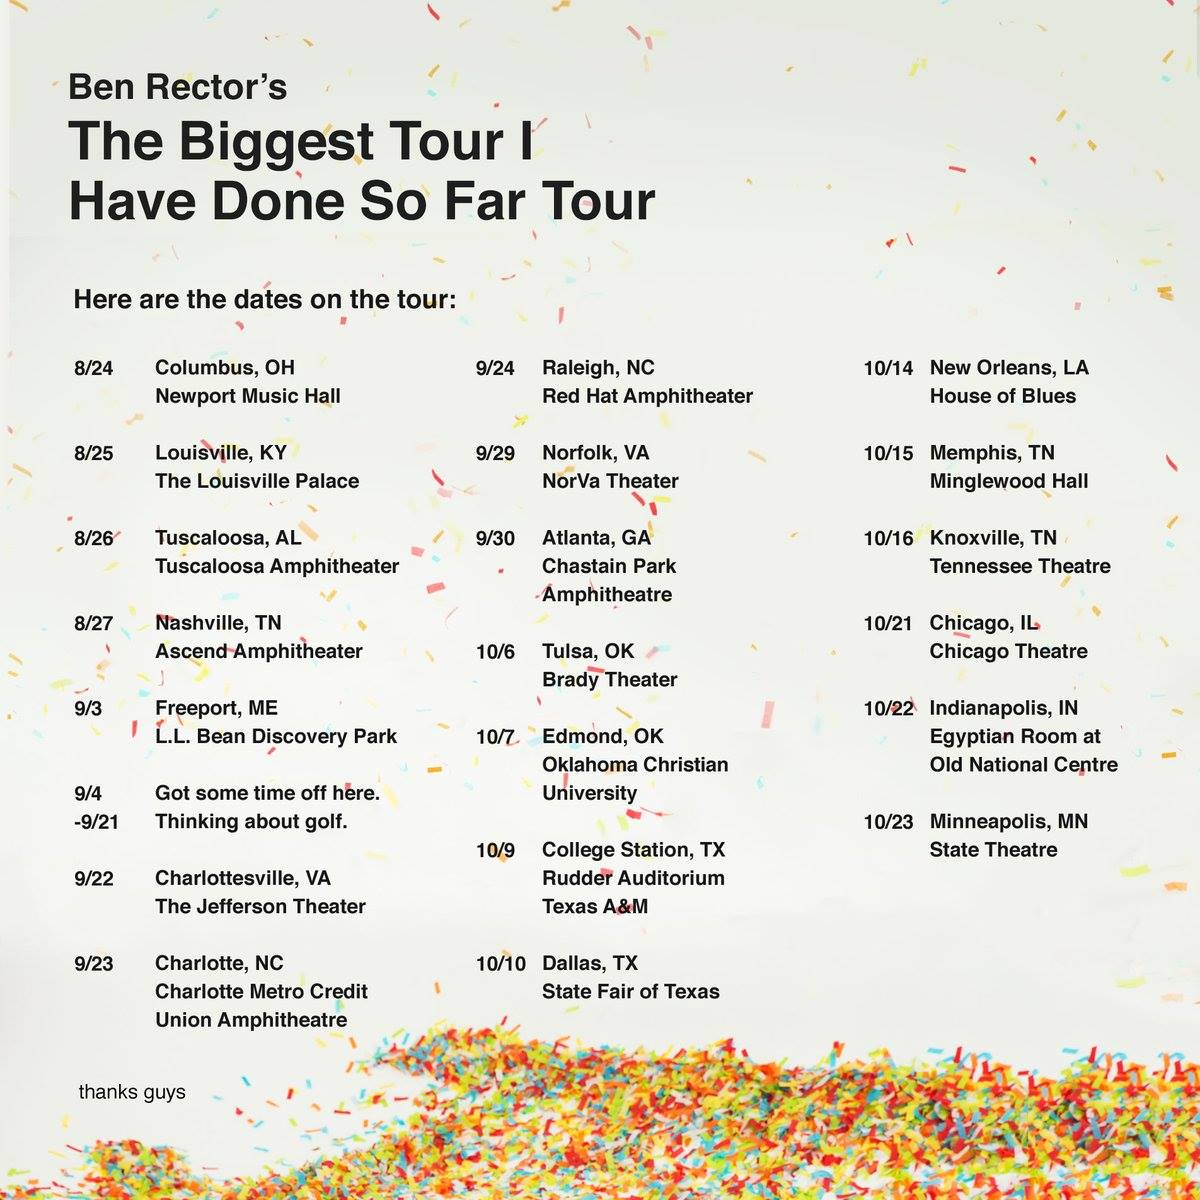 Ben Rector - U.S. The Biggest Tour I Have Done So Far Tour - 2016 Tour Poster